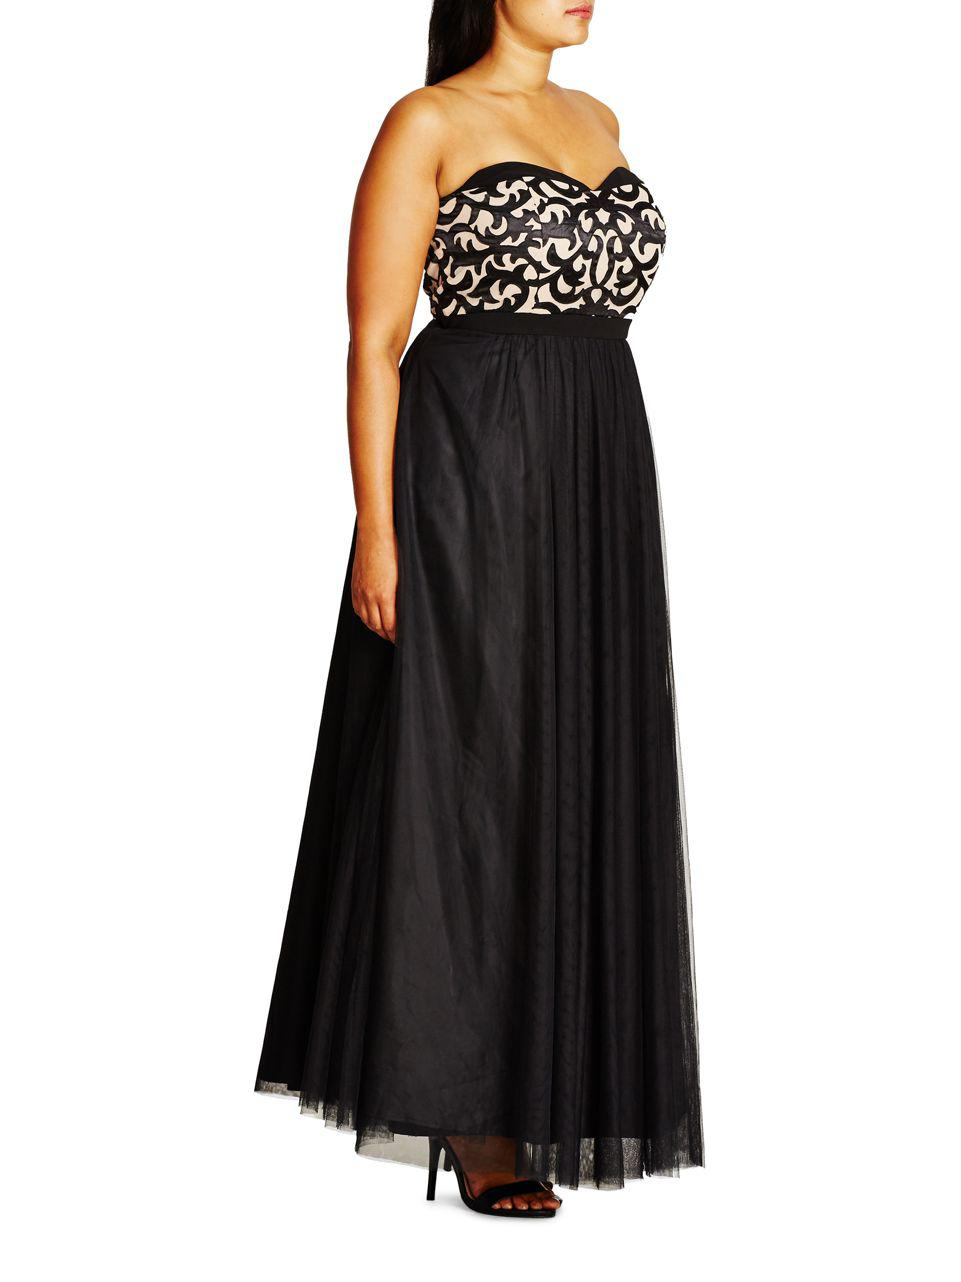 City Chic ball gown